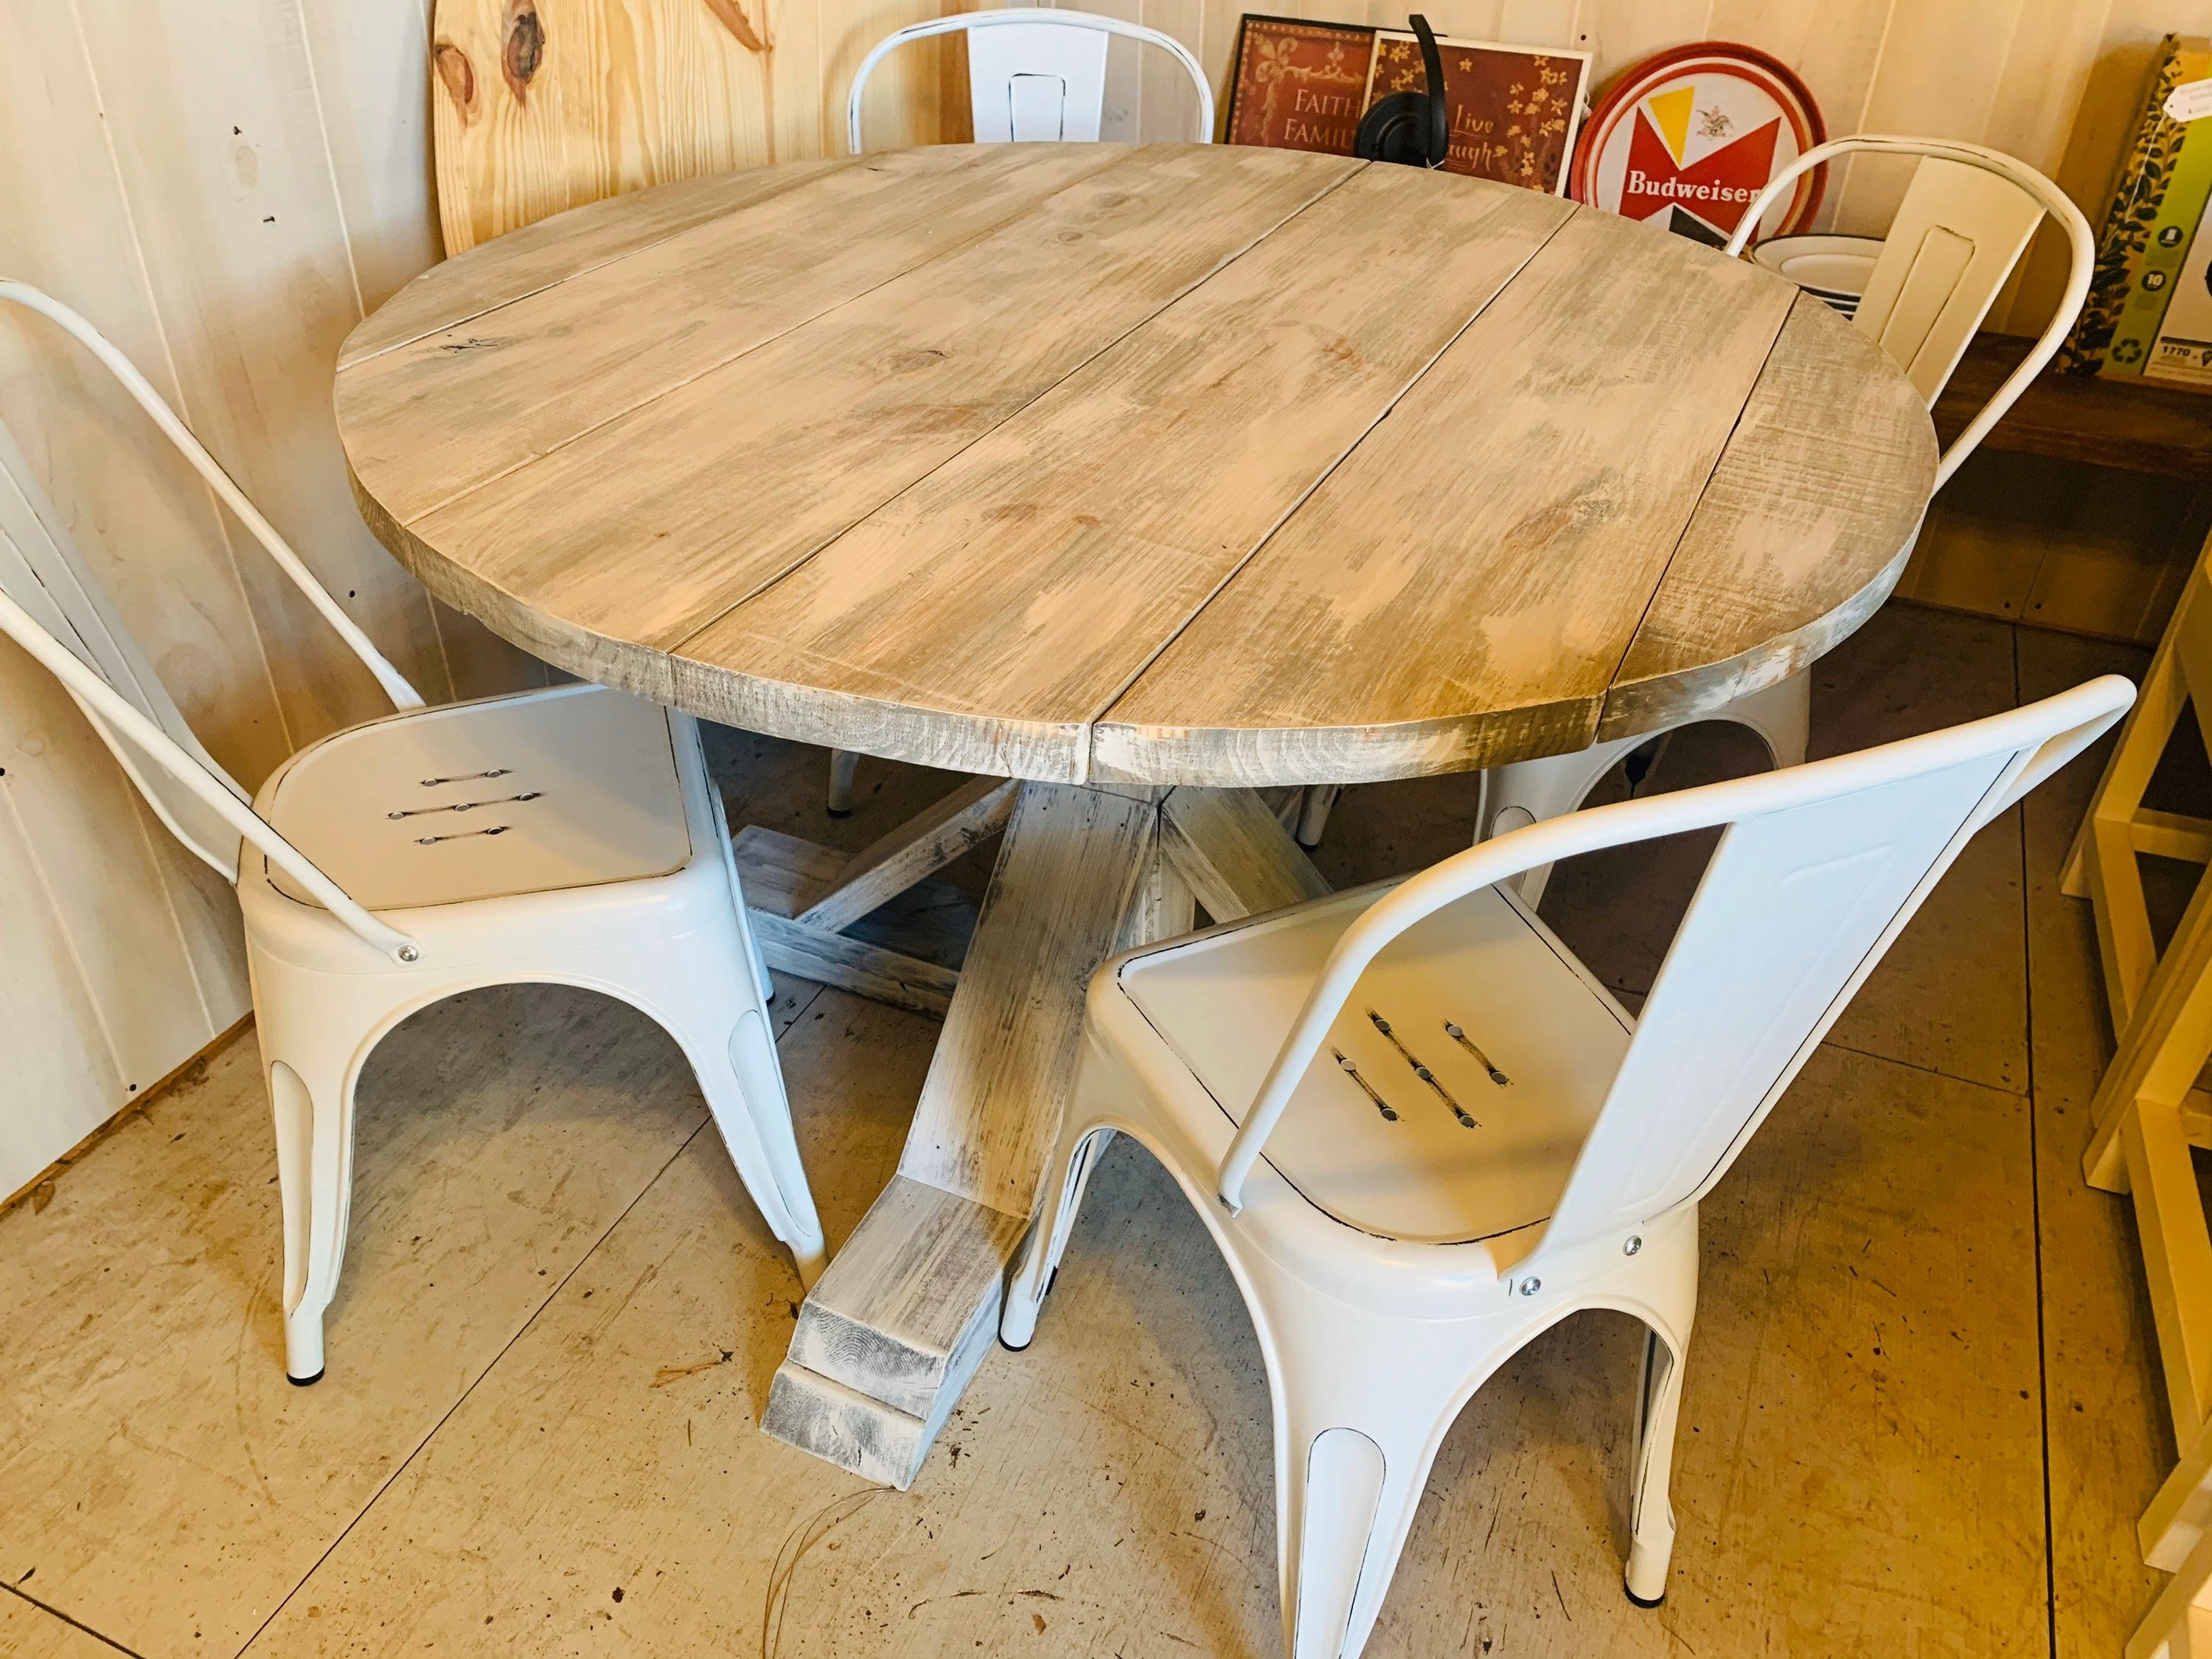 Round Rustic Farmhouse Table With Chairs Single Pedestal Style Base Gray White Wash Top With Distressed White Base Small Wooden Dining